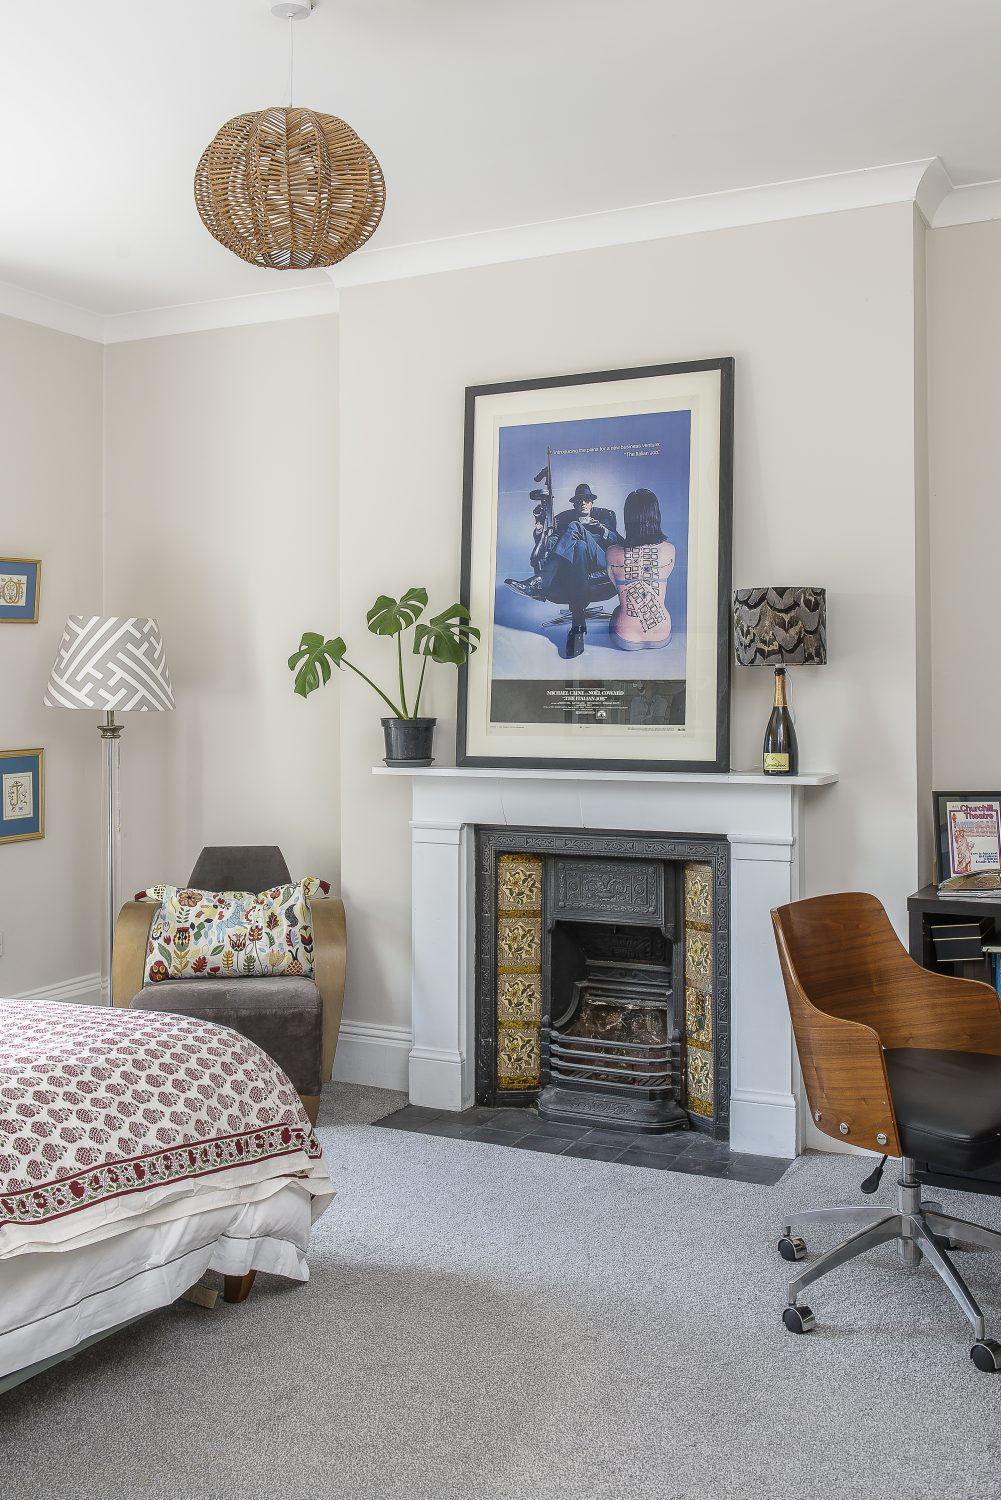 The guest bedroom is a calm haven, with walls painted in Farrow & Ball Strong White and a pleasing mix of fabric designs and colours provided by the upholstered headboard, soft furnishings and lampshades made by Jules – proving that pattern doesn't always have to match